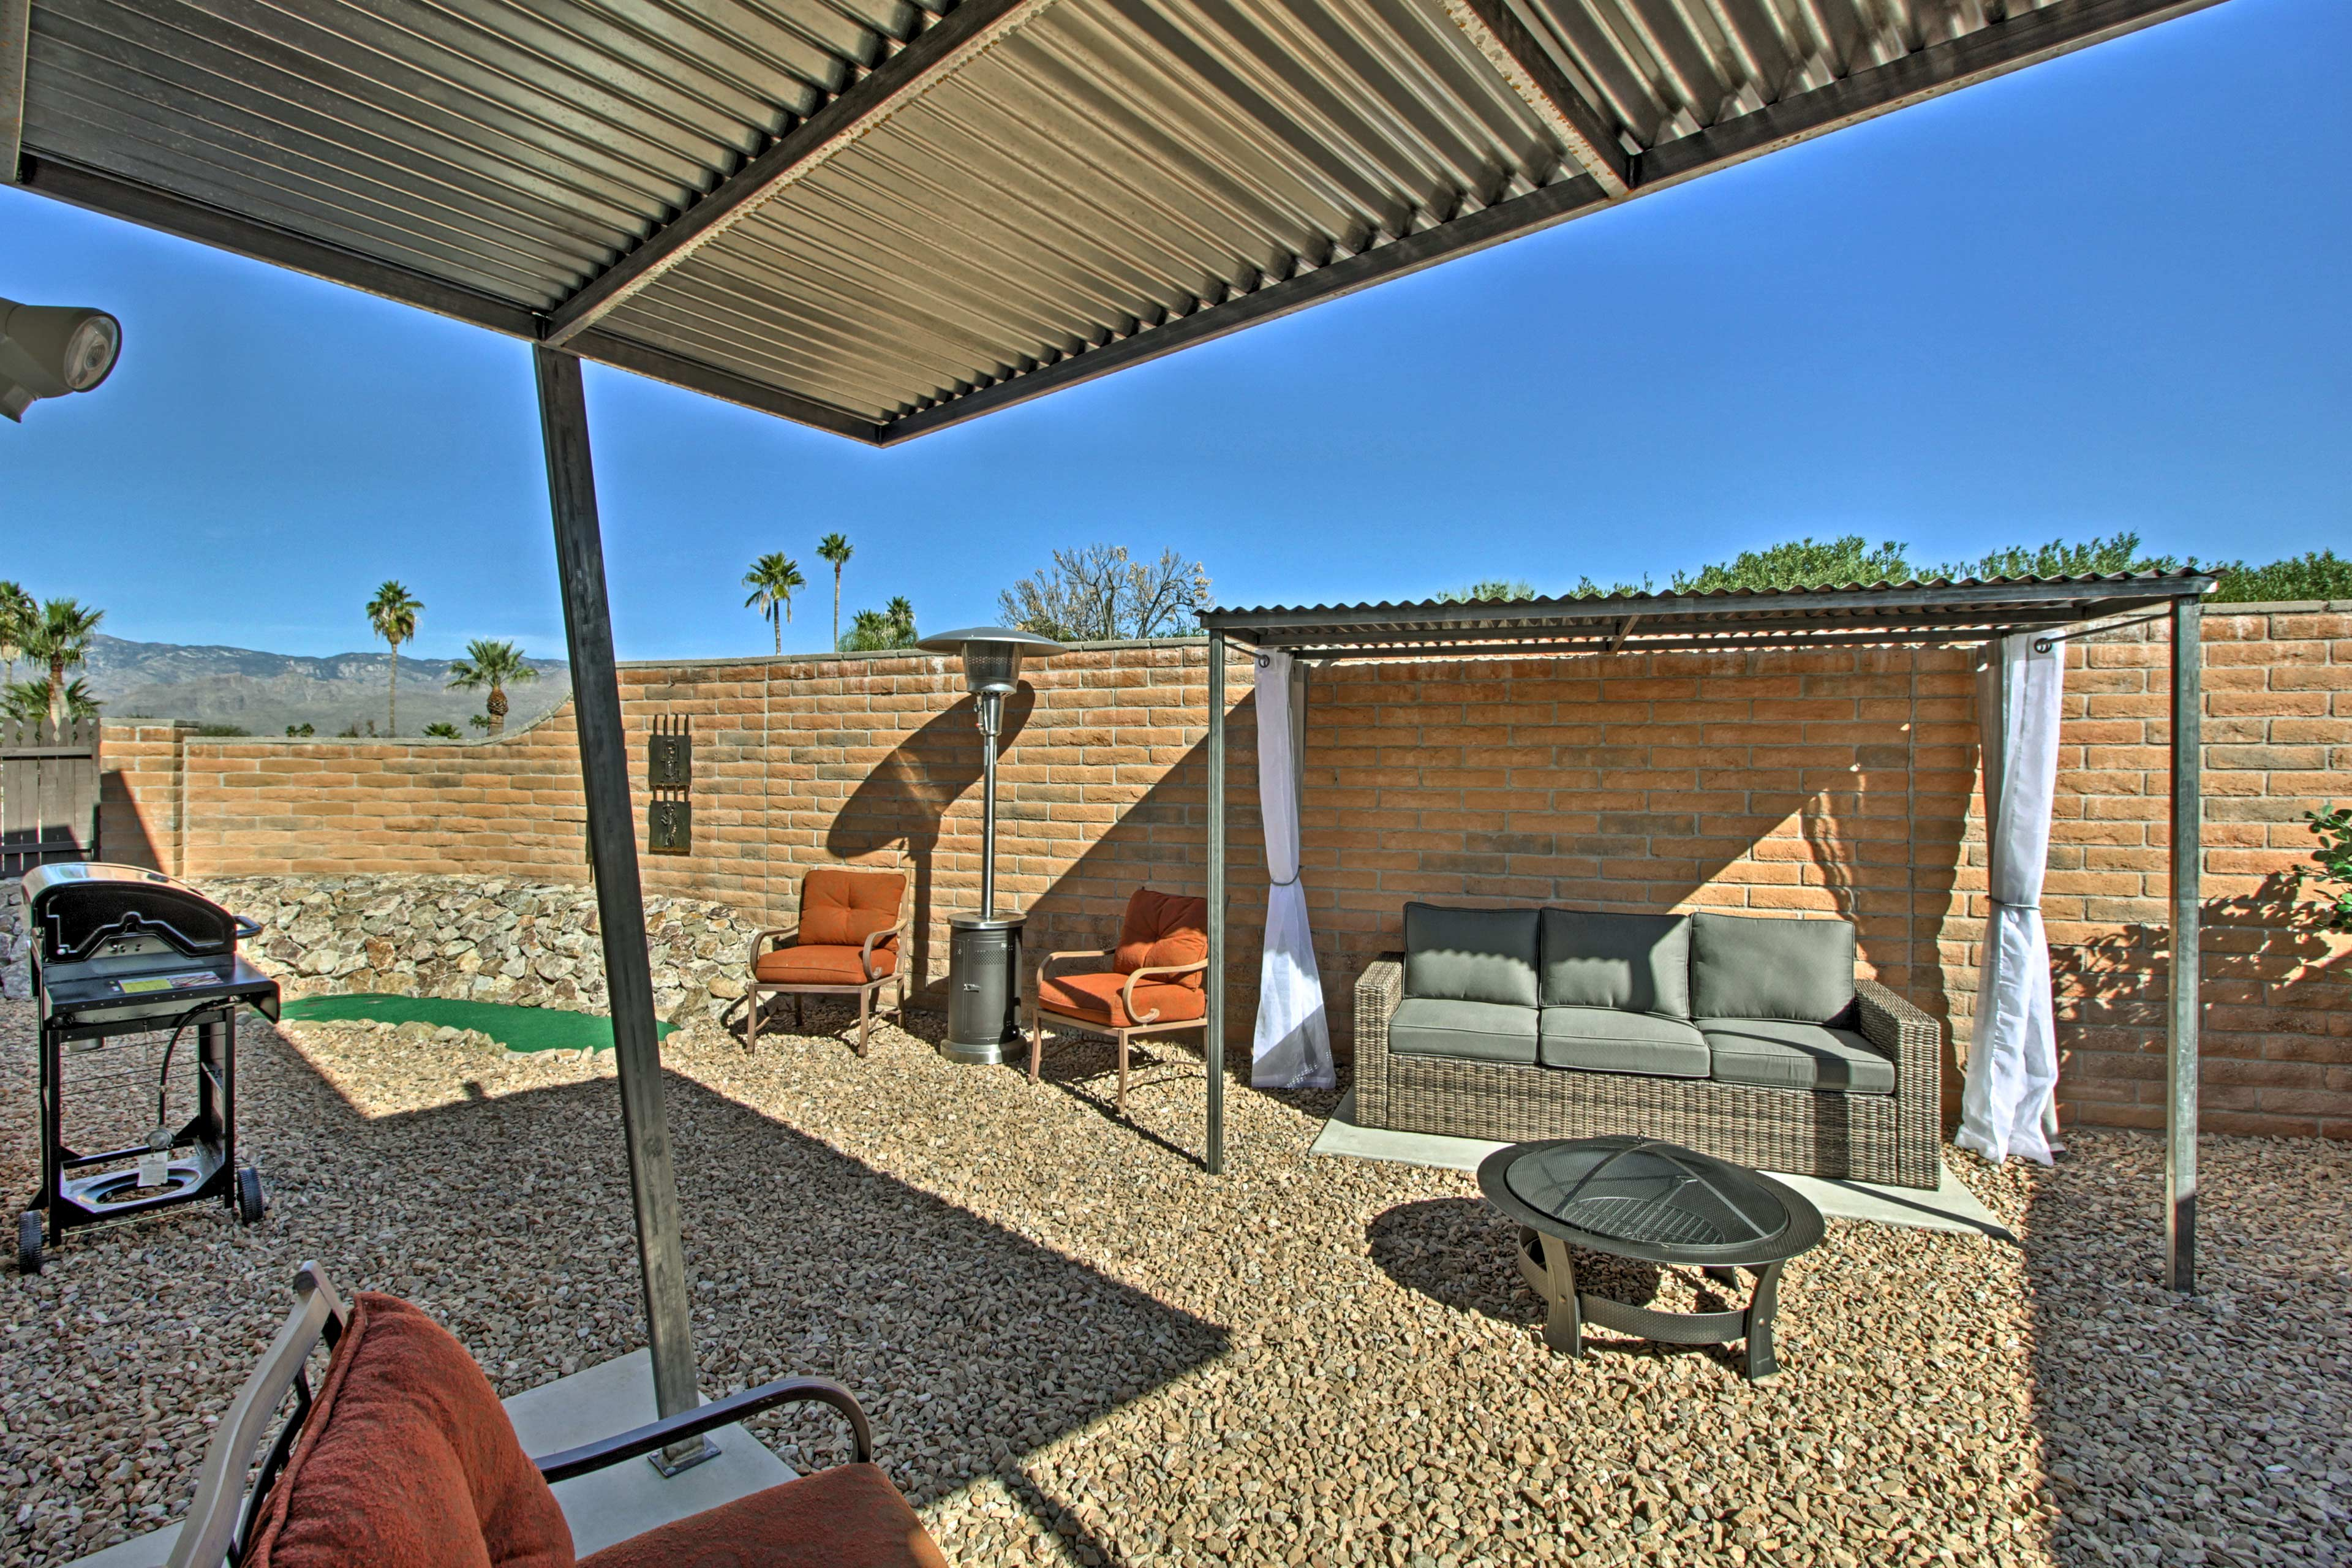 Sneak away to the Saguaro Desert and stay at this vacation rental in Tucson!